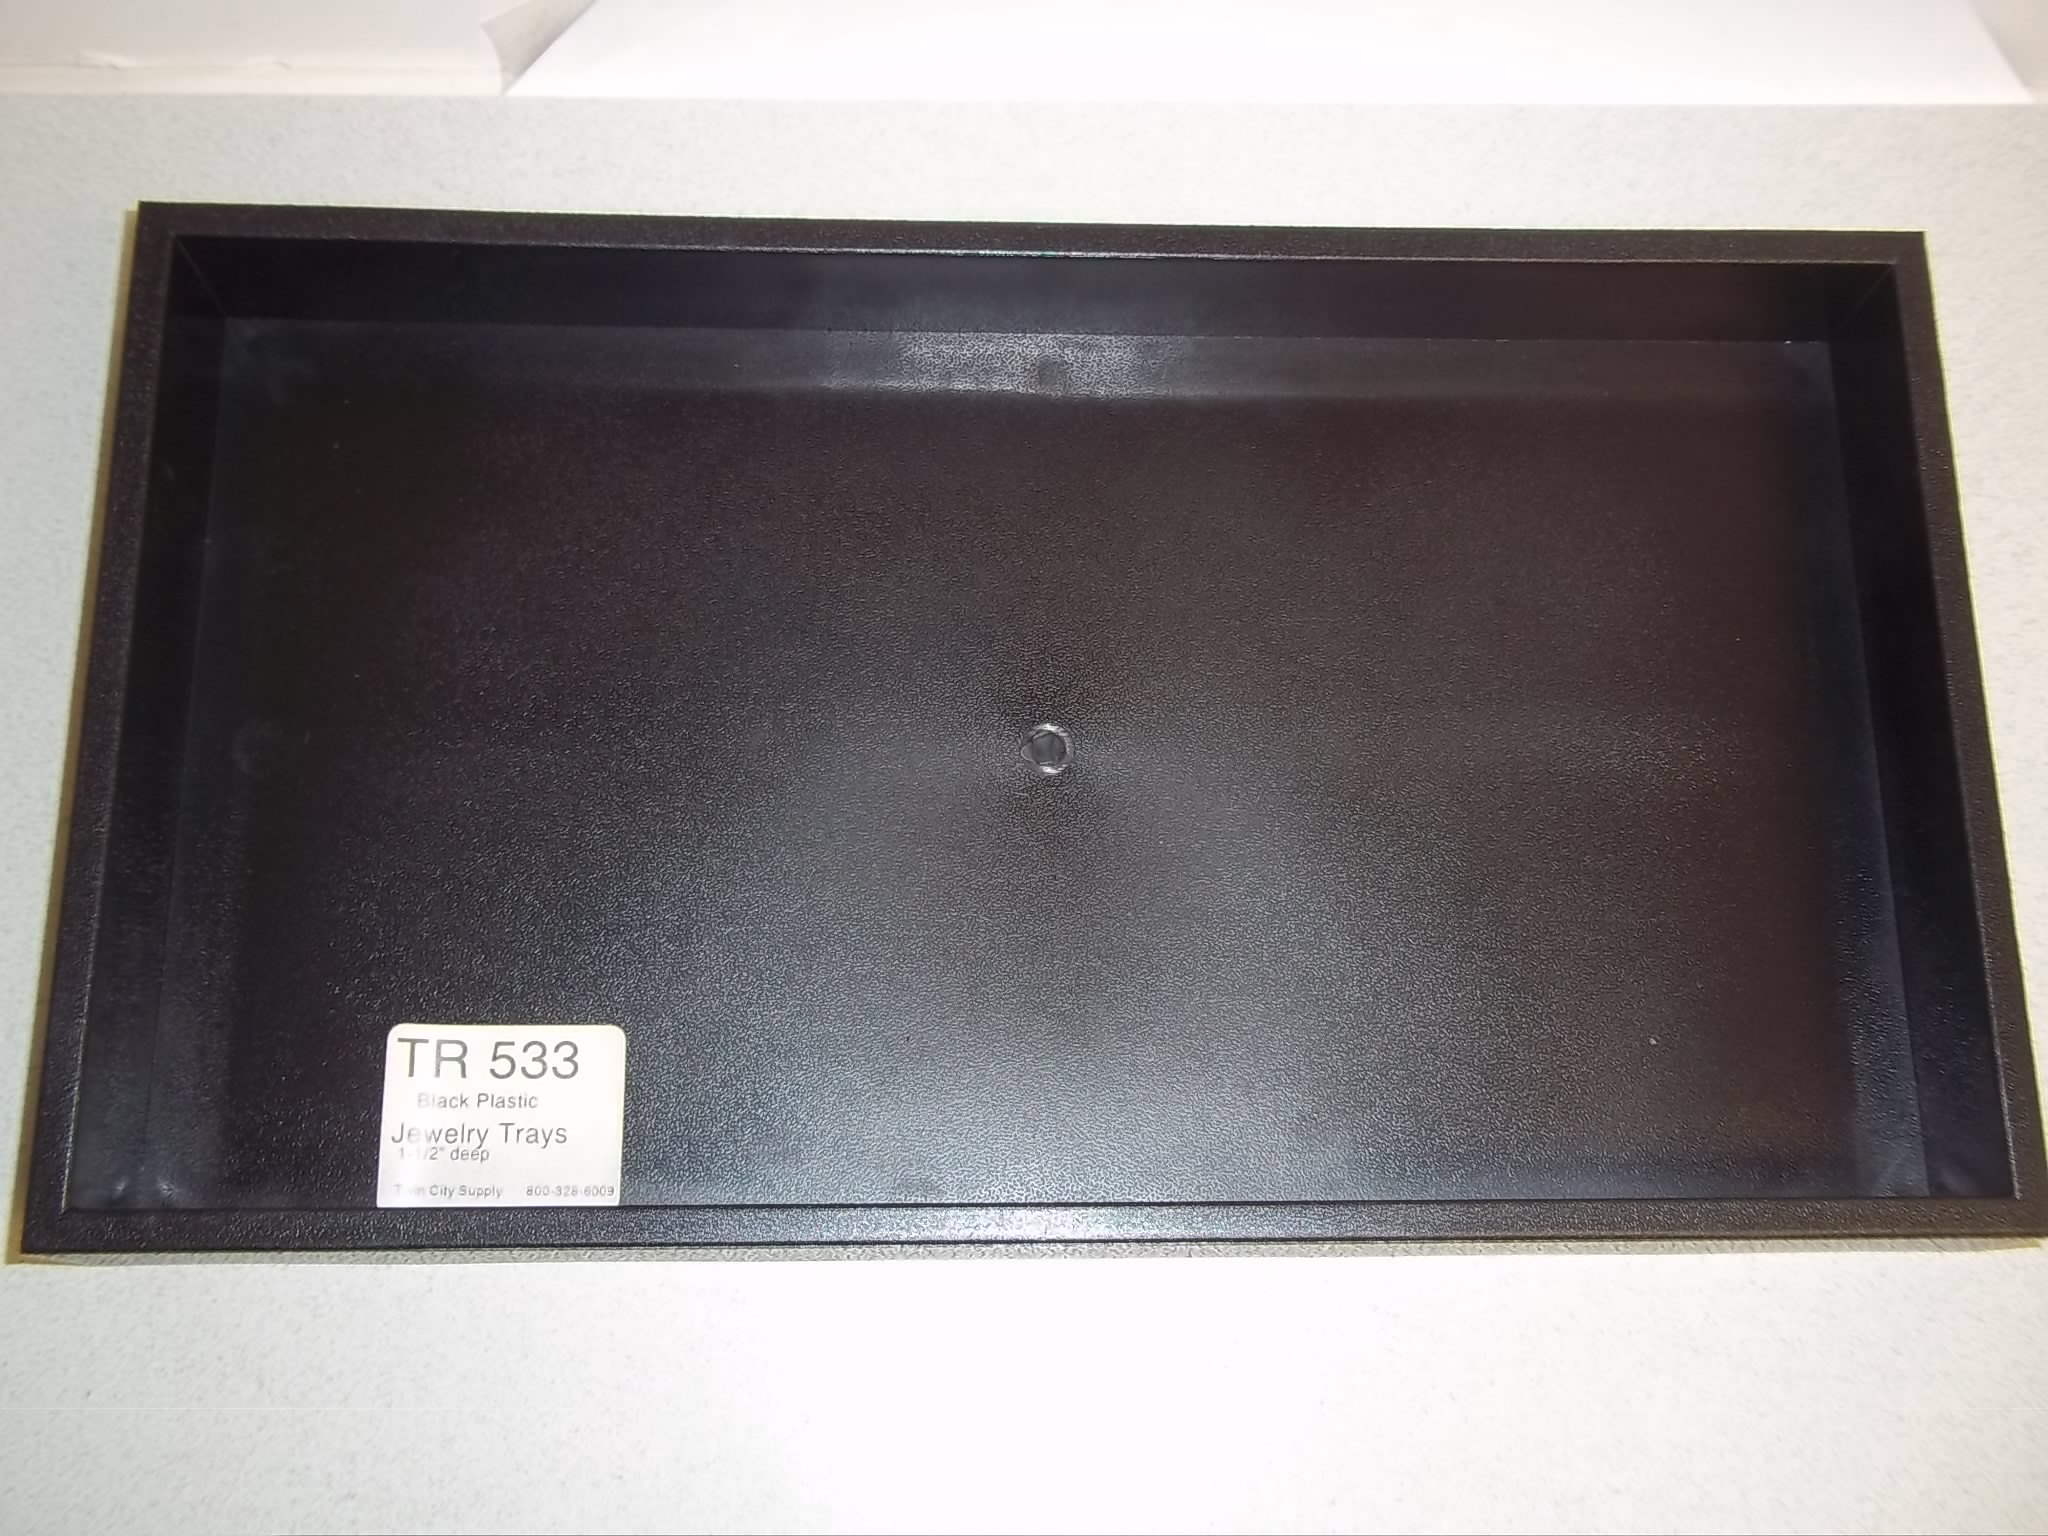 "TR533 Black Plastic Stackable Trays 1 1/2"" deep"